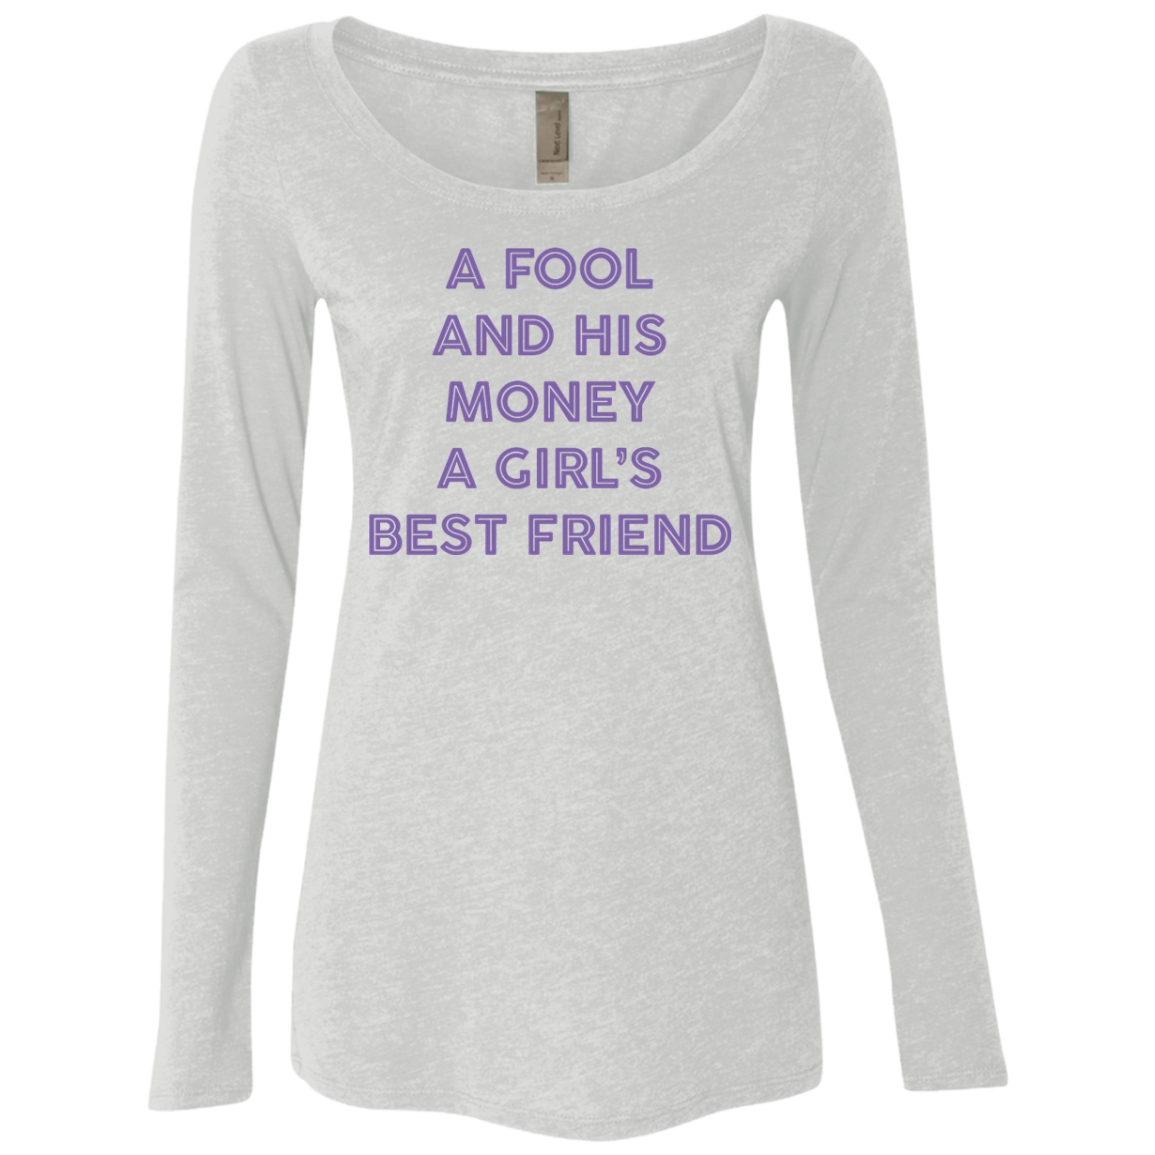 A Fool And His Money A Girl's Best Friend Women's Long Sleeve Tee